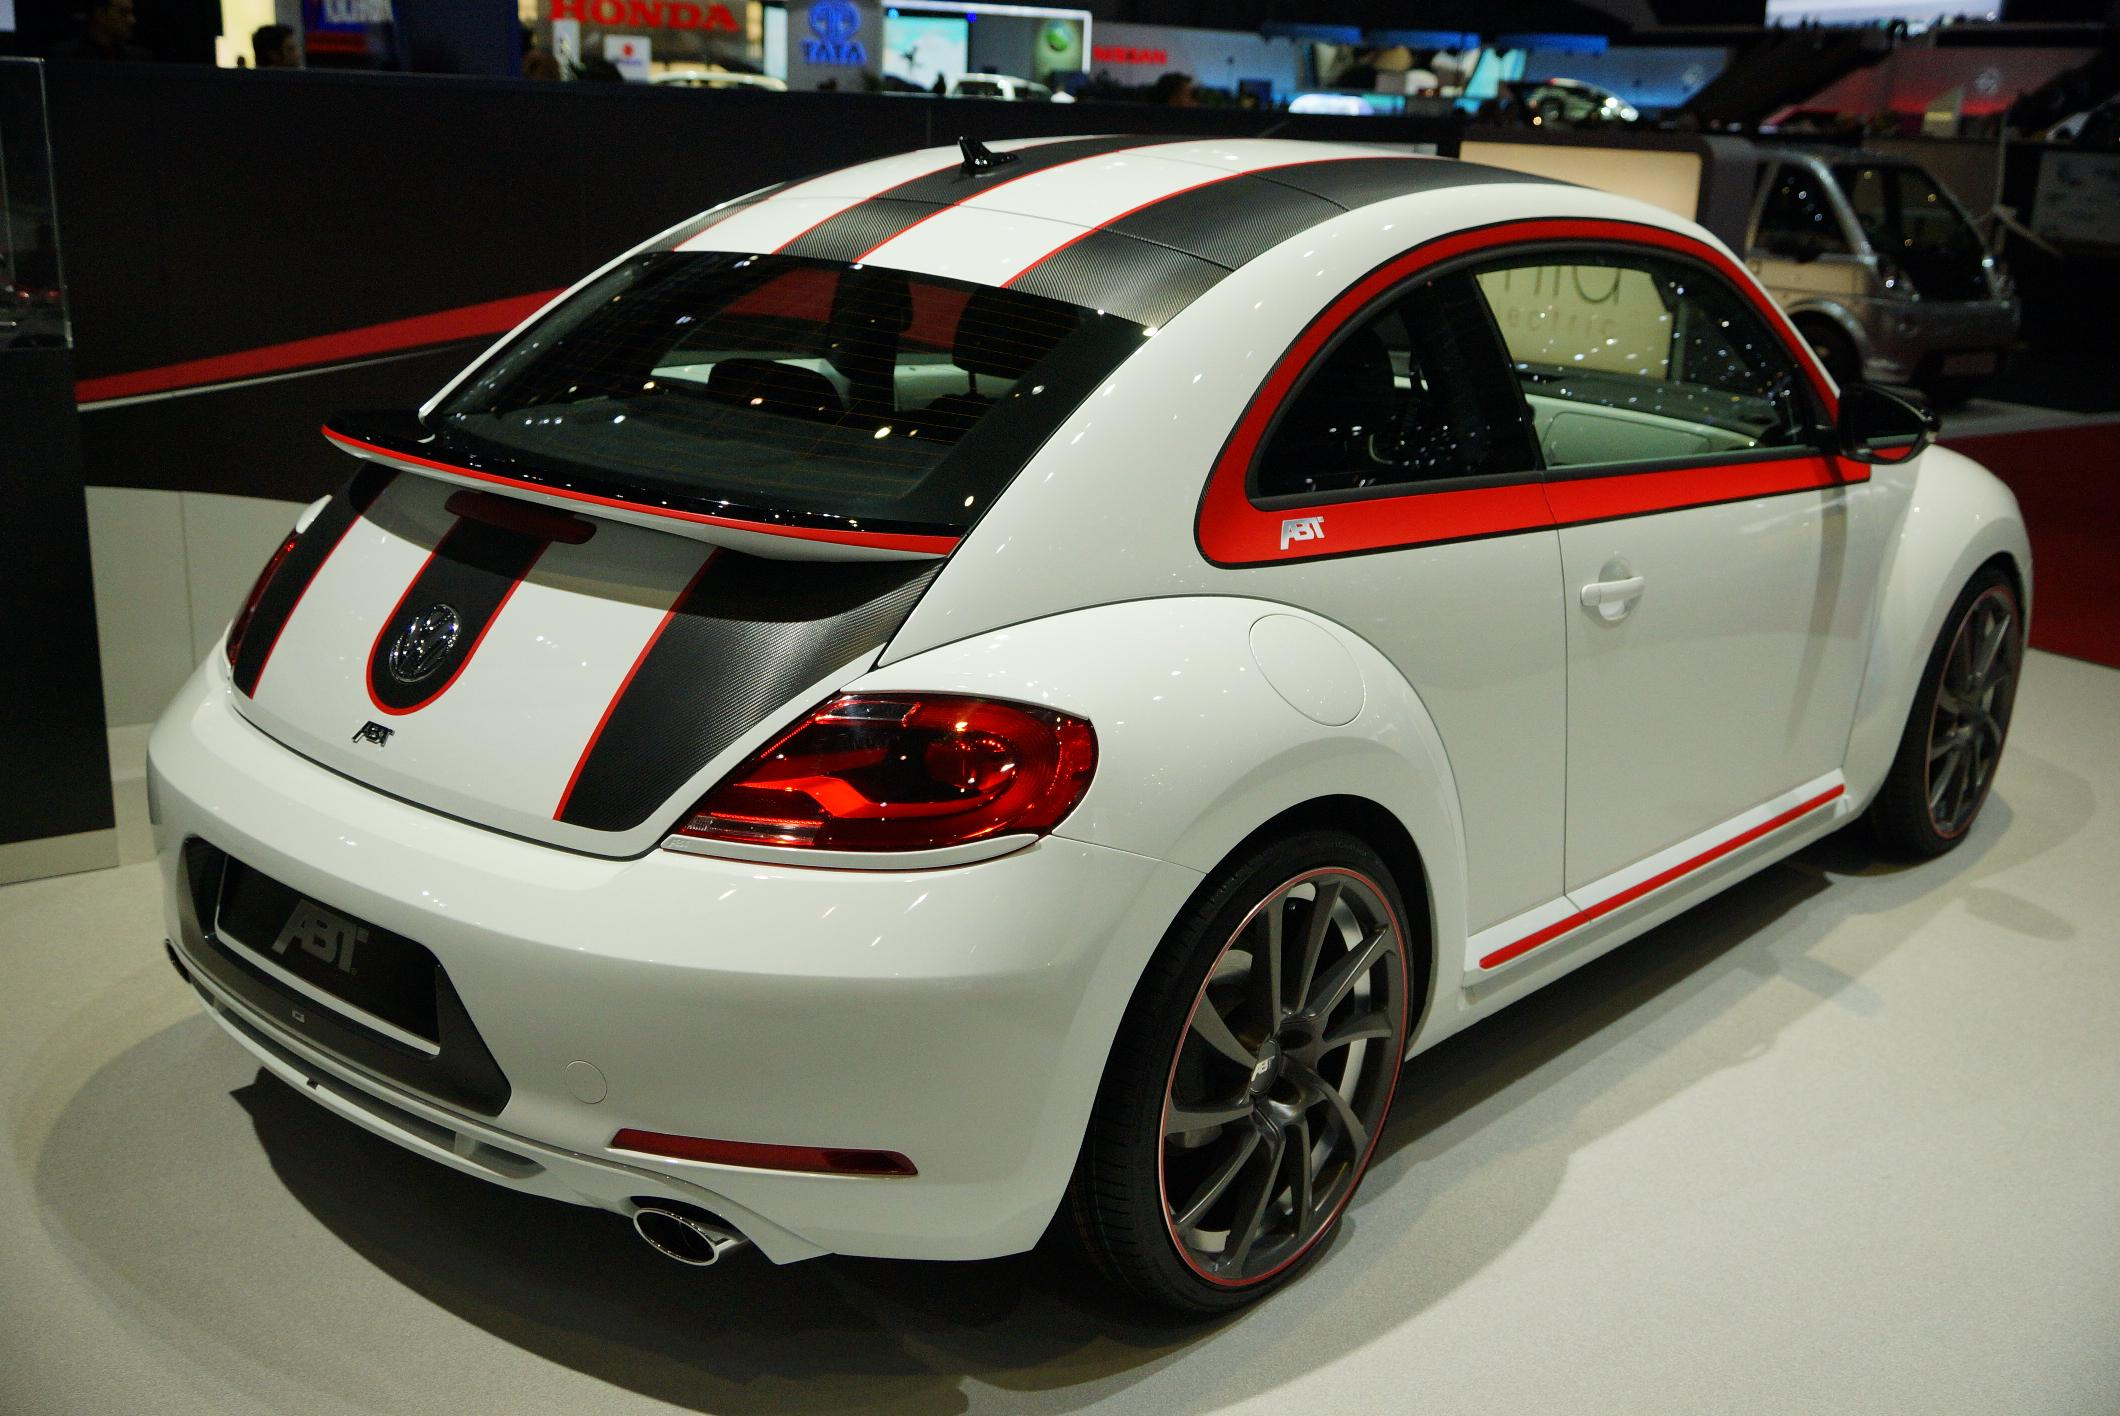 ABT VW Beetle Geneva 2012 Rear